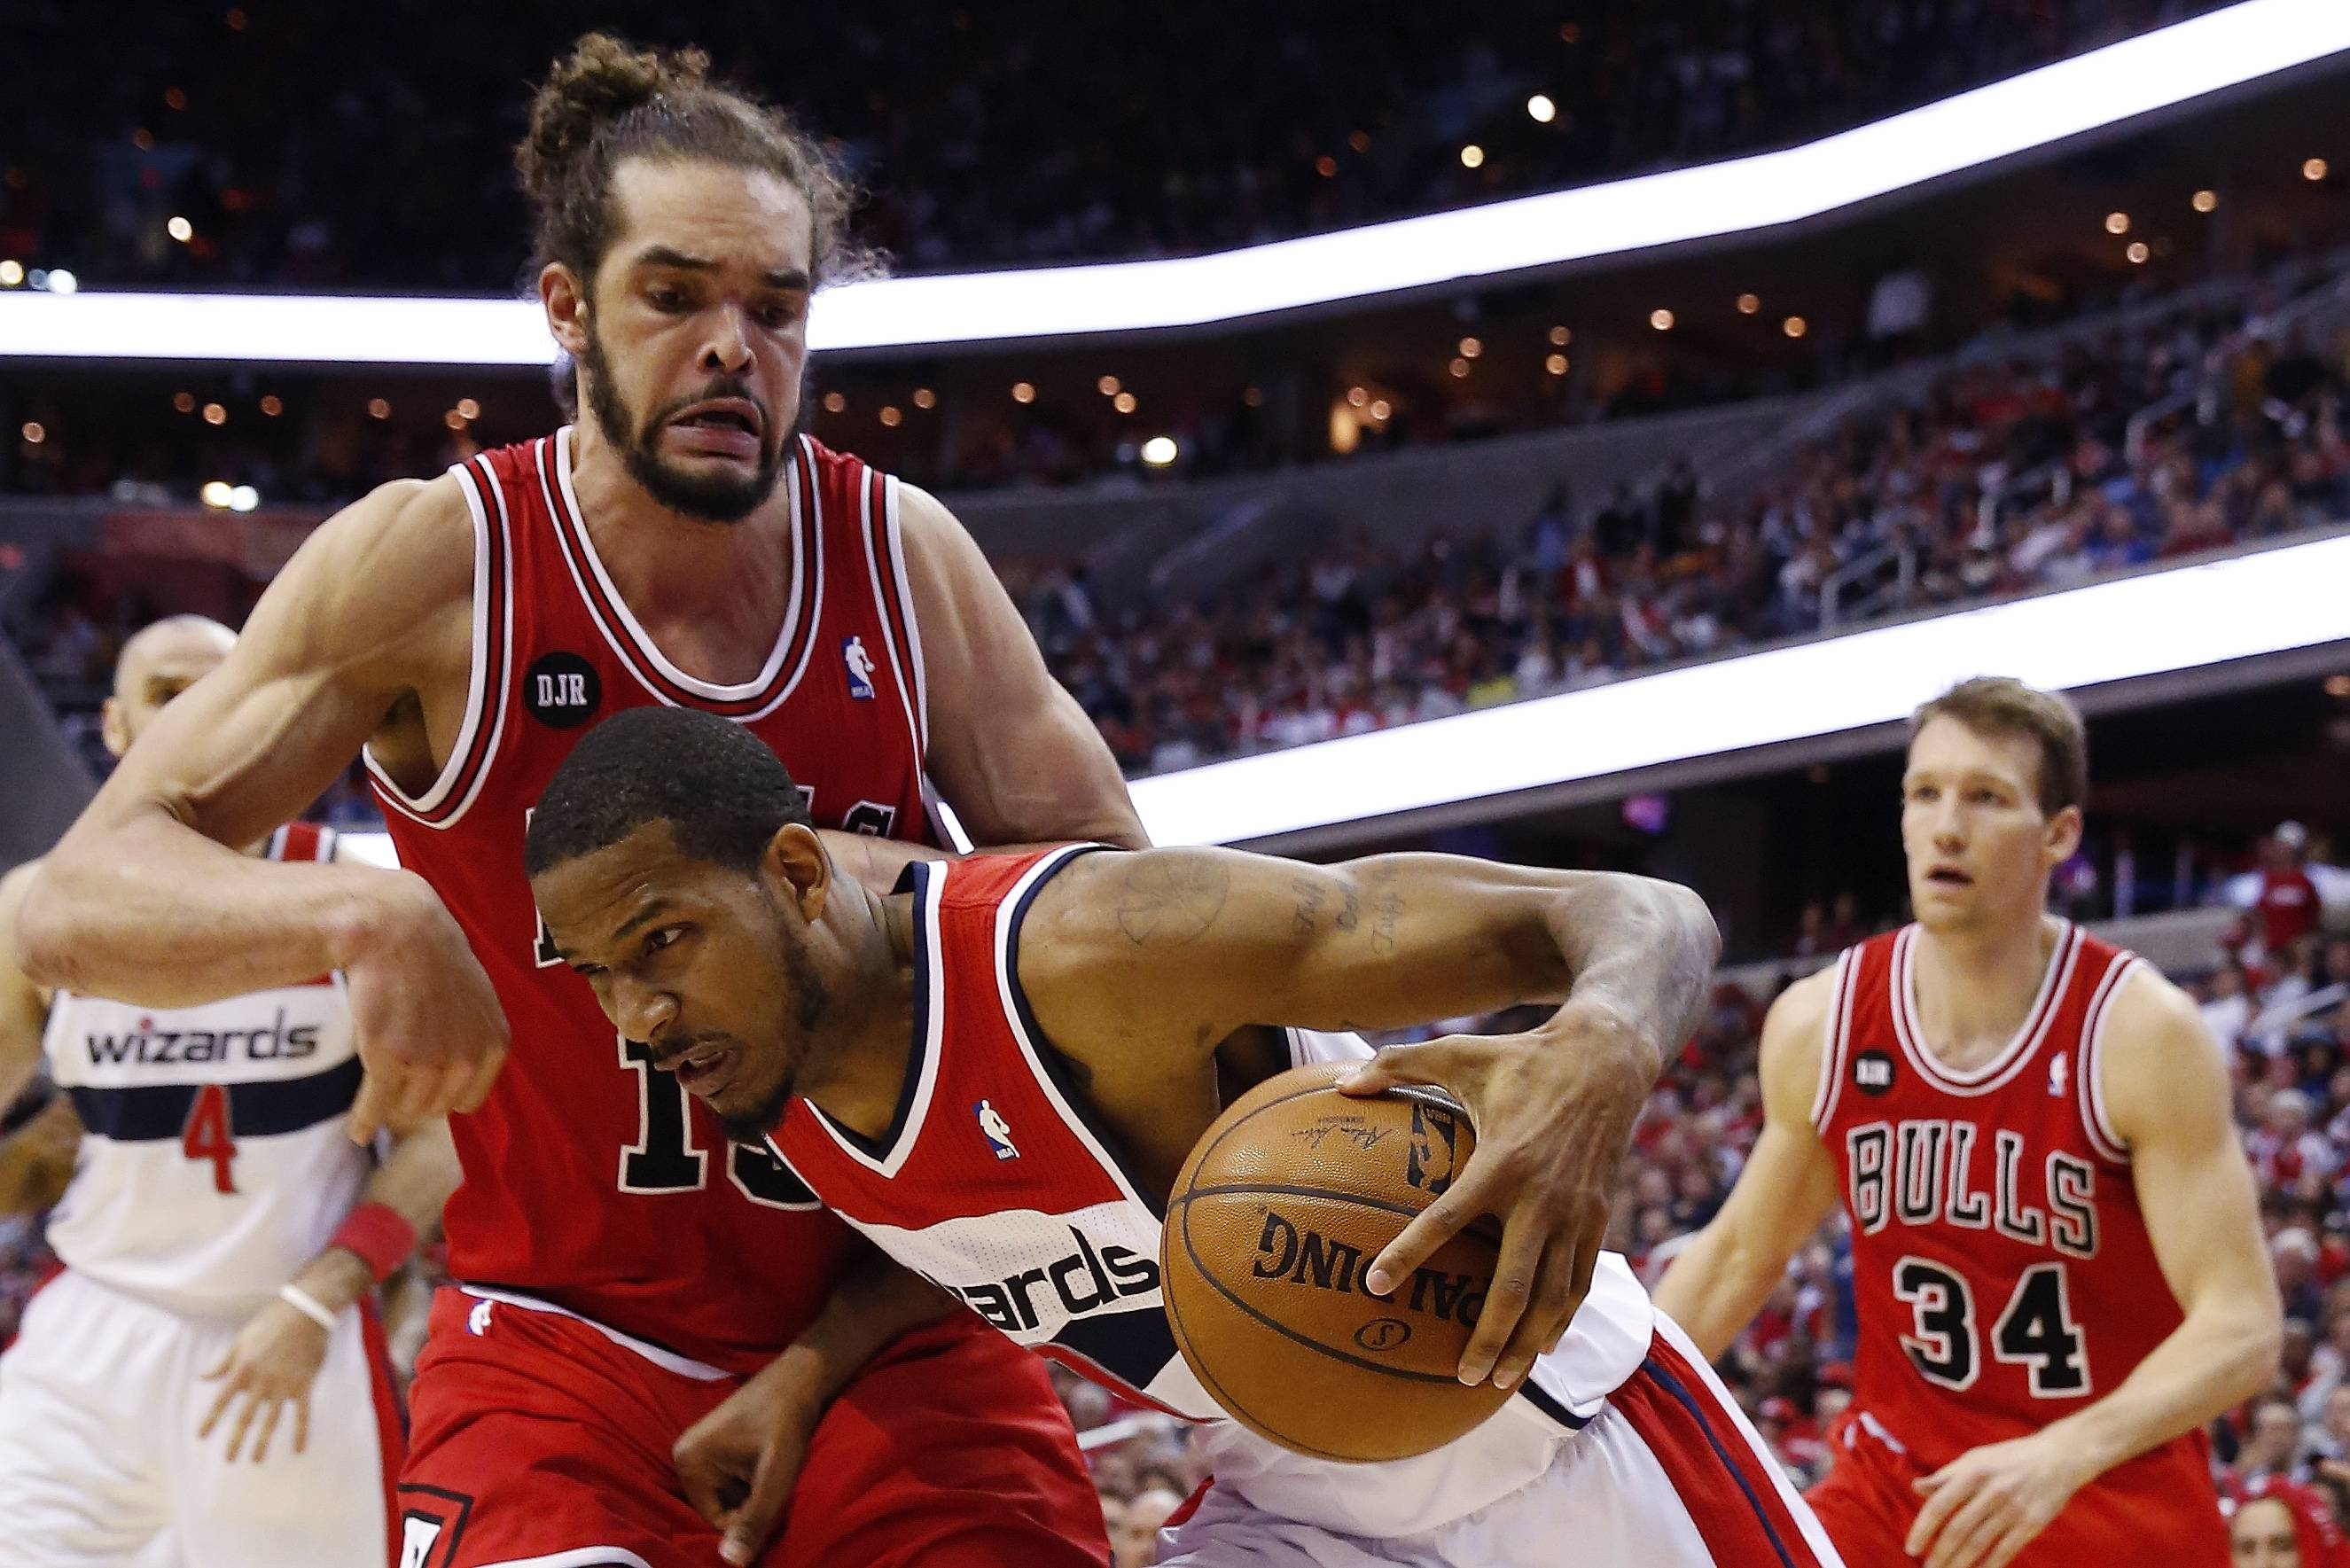 Washington Wizards forward Trevor Ariza drives past Chicago Bulls center Joakim Noah (13) and Chicago Bulls forward Mike Dunleavy (34) looks on during the second half.